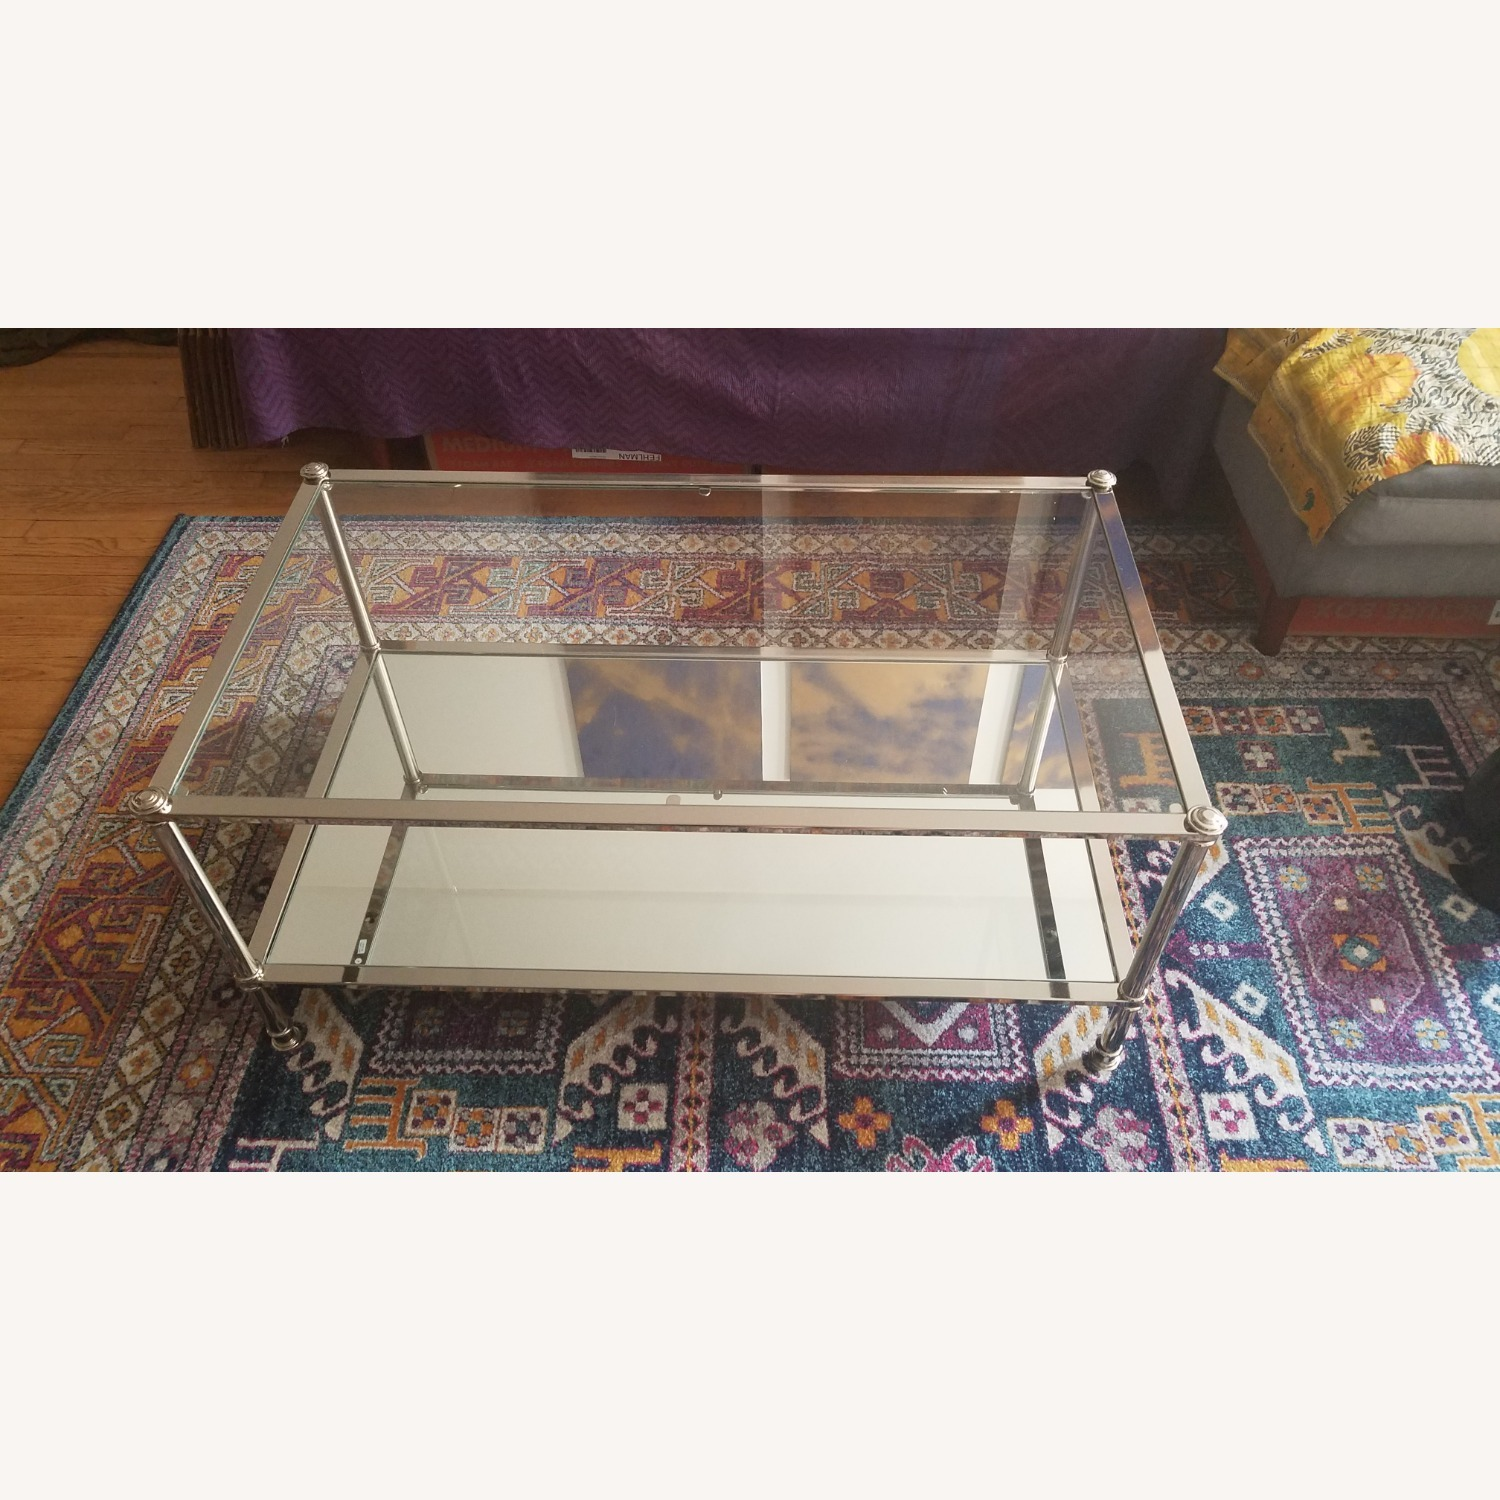 Wayfair Atticus Glass and Silver Coffee Table - image-0